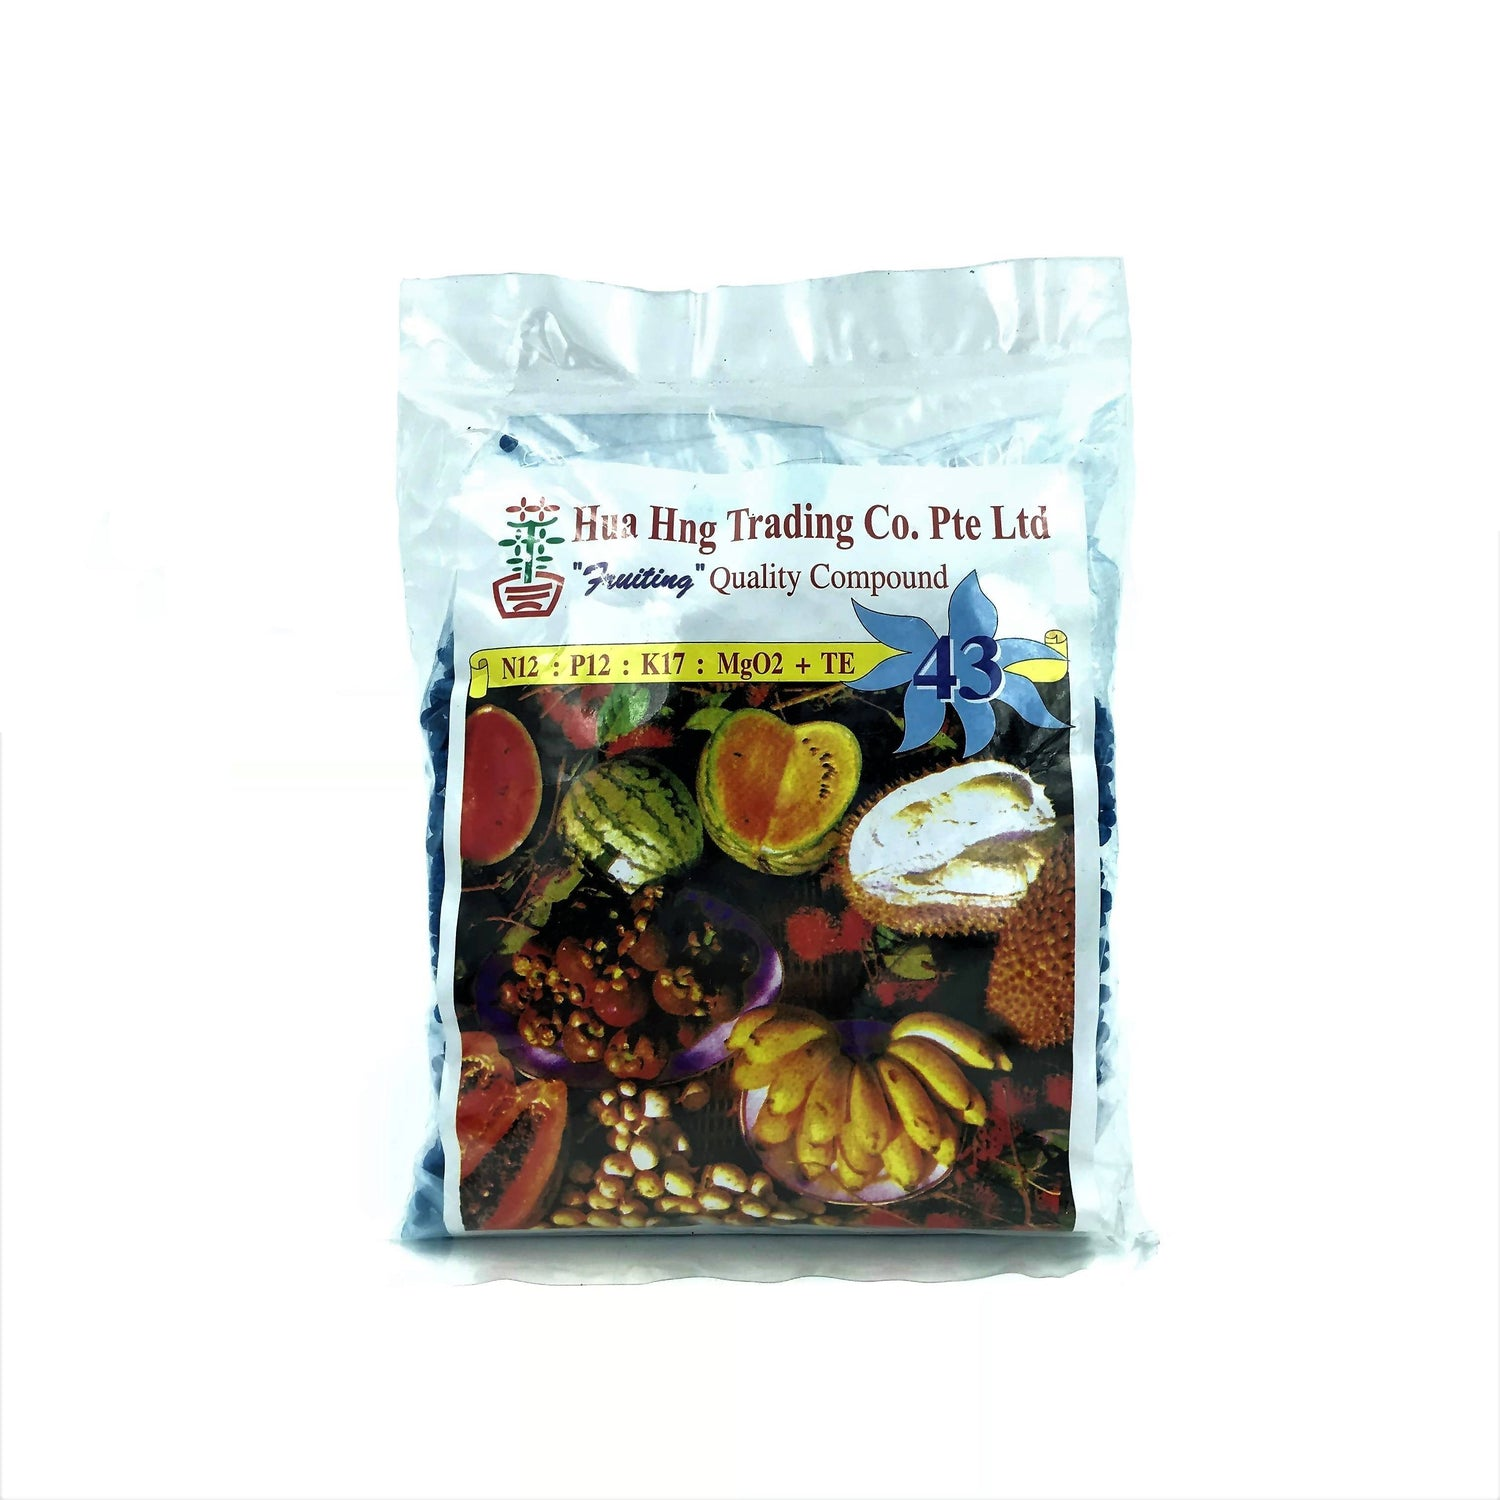 NPK Solid Fertiliser 43, Fruiting (400g)